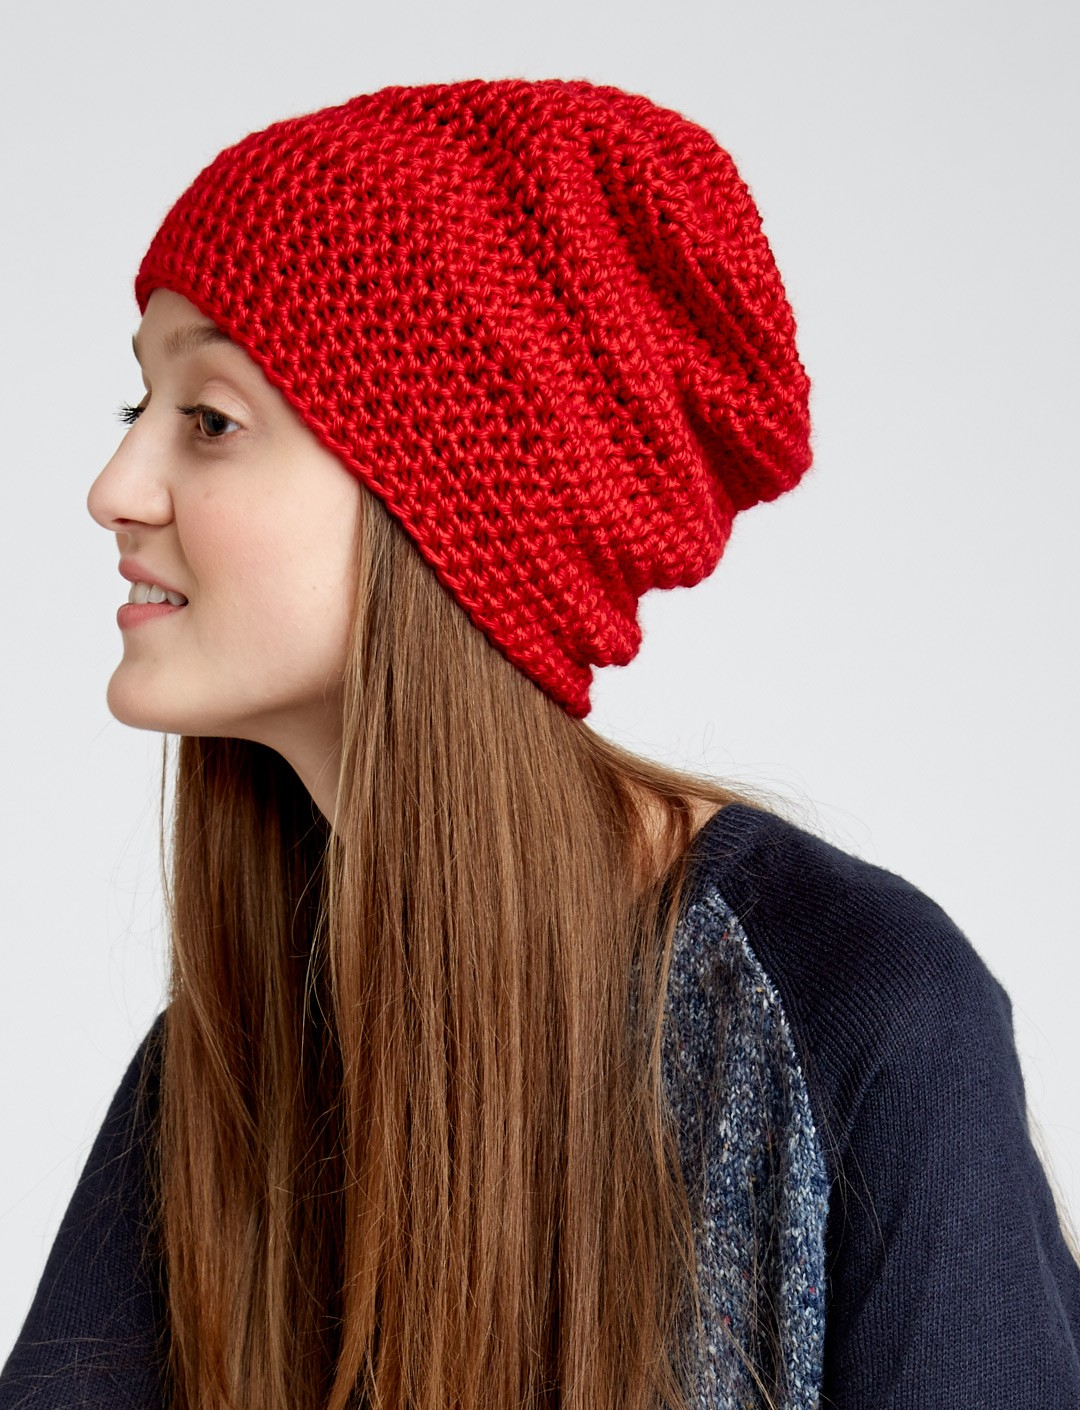 Easy Crochet Slouchy Hat Patterns : Slouchy Beanie - Patterns Yarnspirations